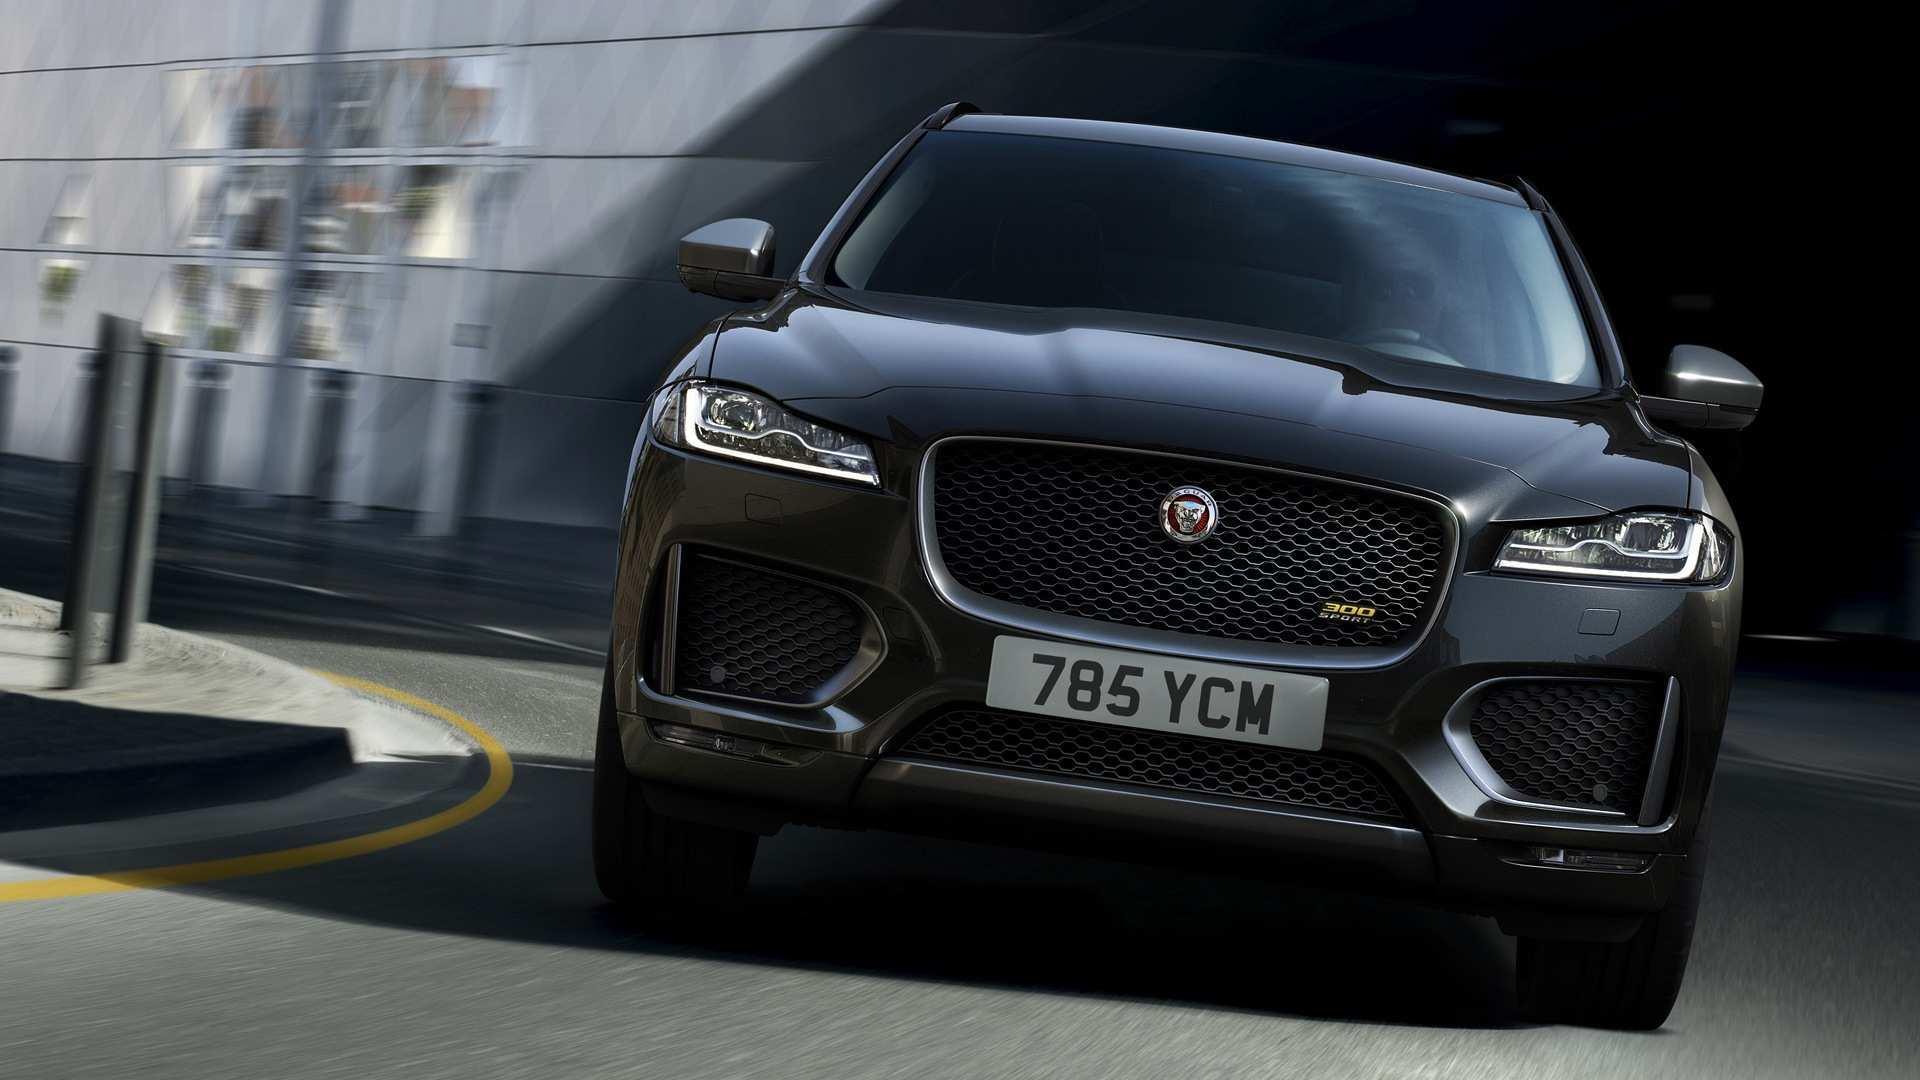 77 The Jaguar F Pace New Model 2020 Reviews